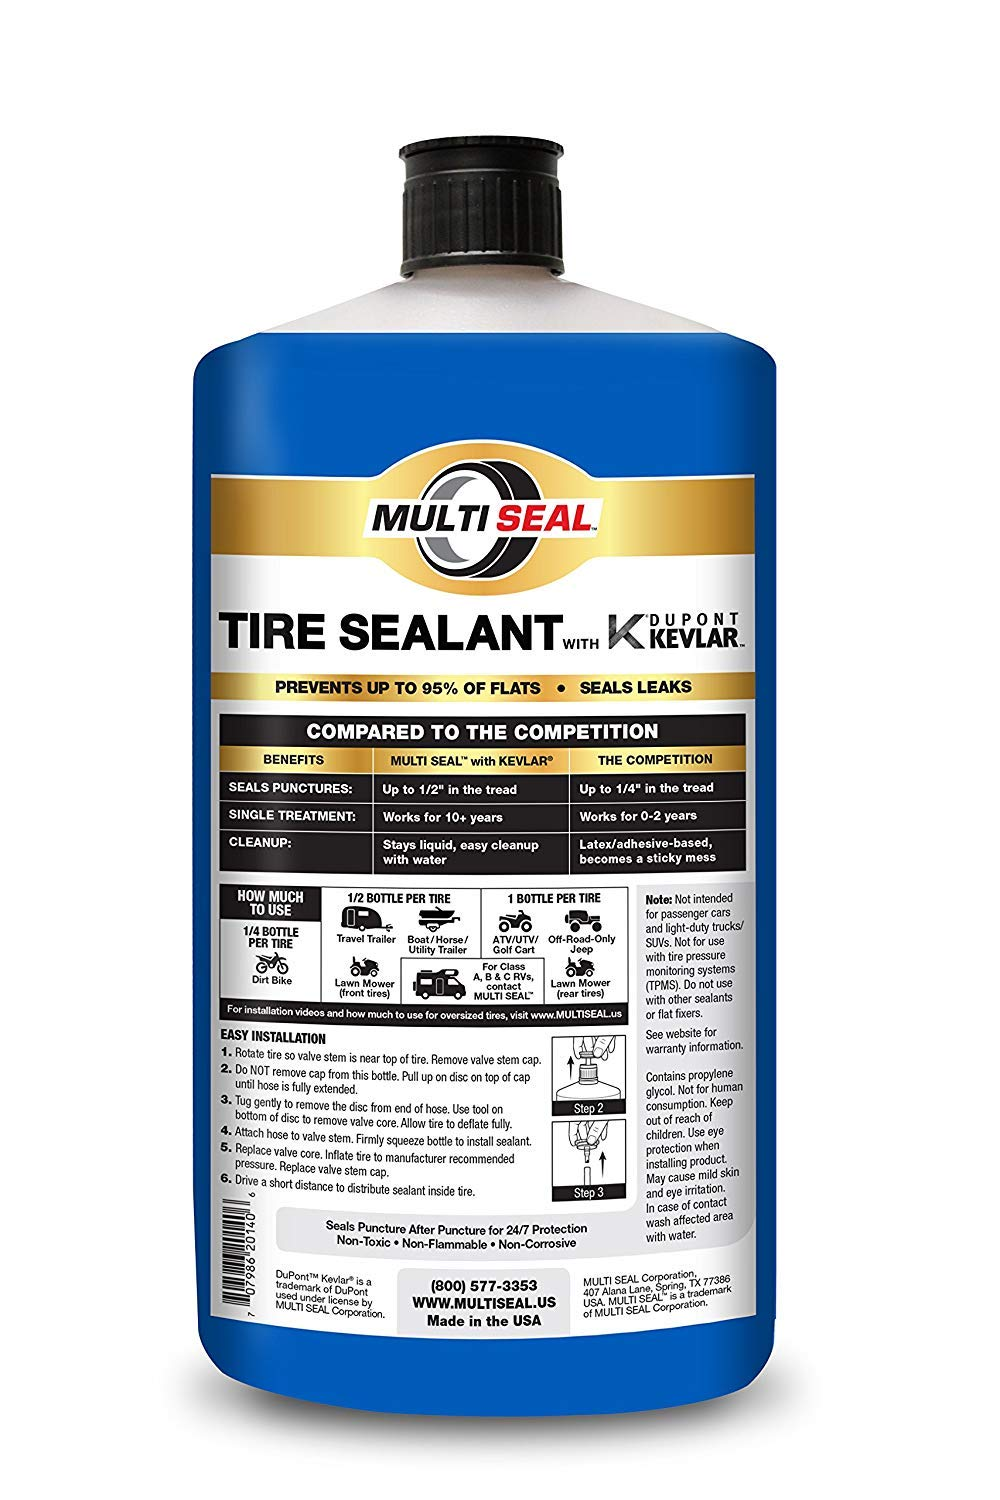 MULTI SEAL 20148 Tire Sealant with Kevlar (RV & Trailer Formula), Great for Travel Trailers, Boat Trailers, Horse Trailers, Toy Haulers, Cargo Trailers, Utility Trailers and more, 8-Pack (256 oz.) by MULTI SEAL (Image #2)